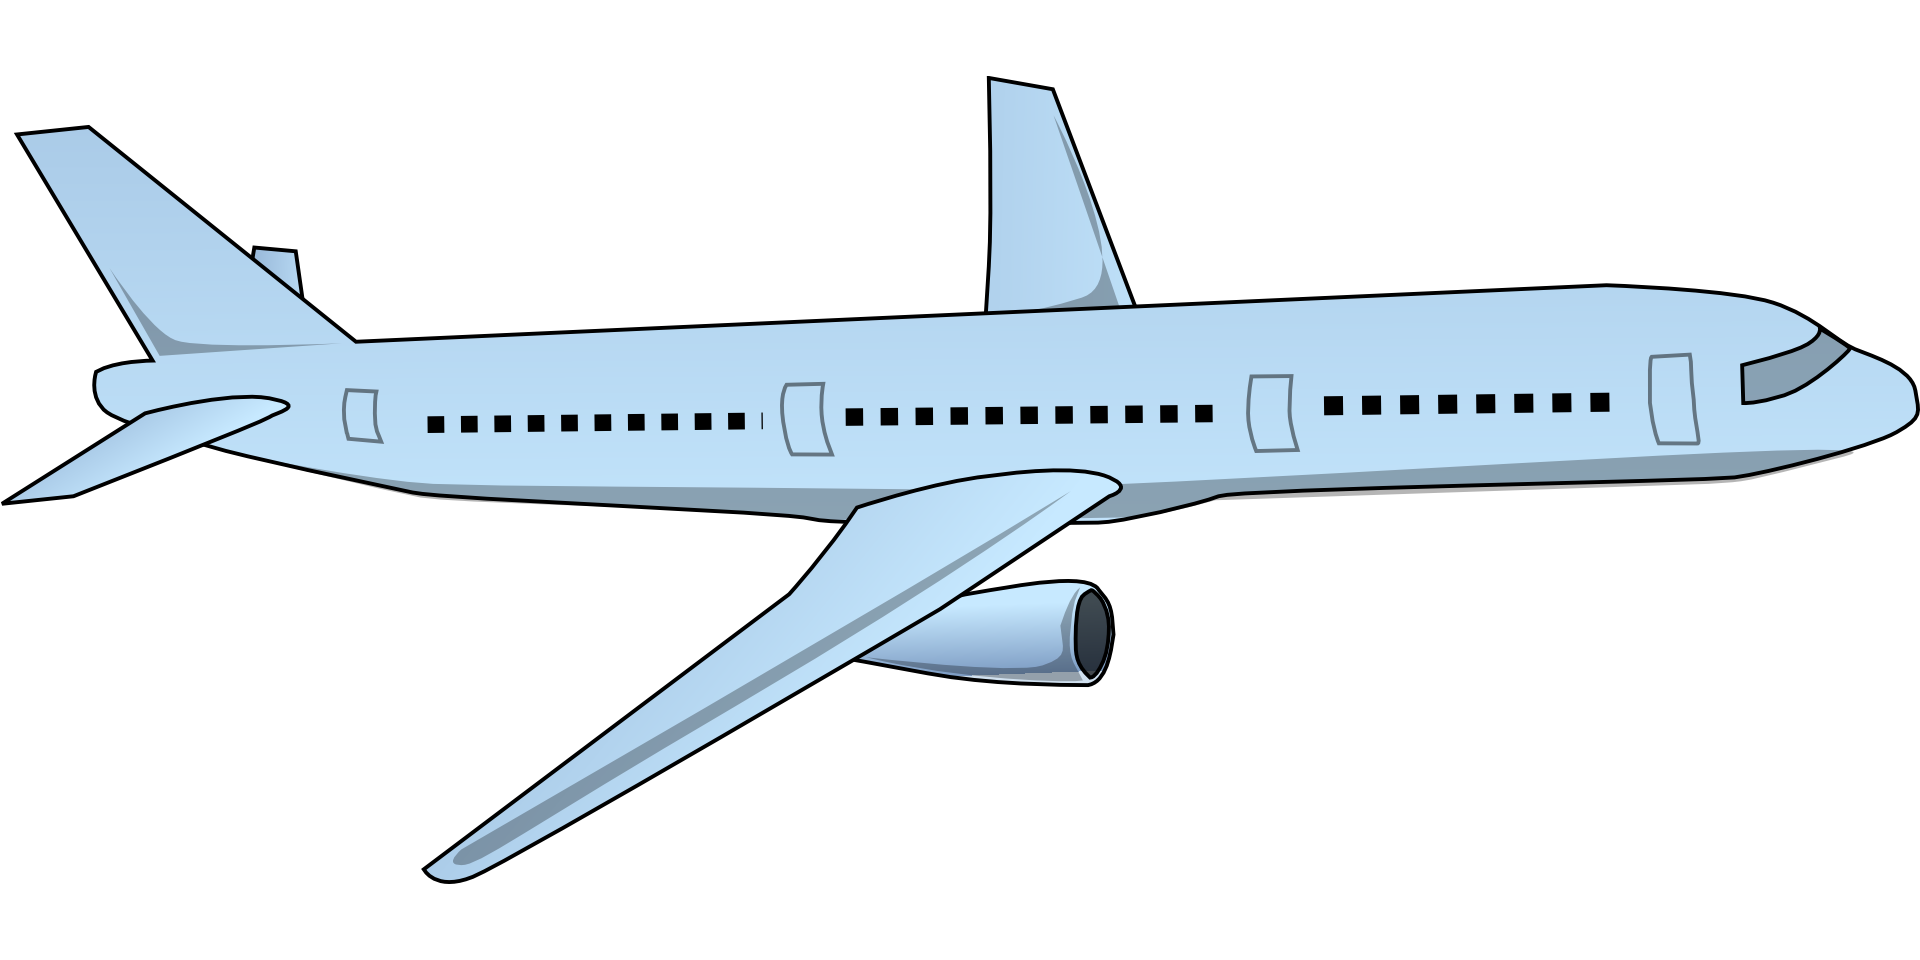 Airplane aircraft computer icons. Jet clipart air transportation